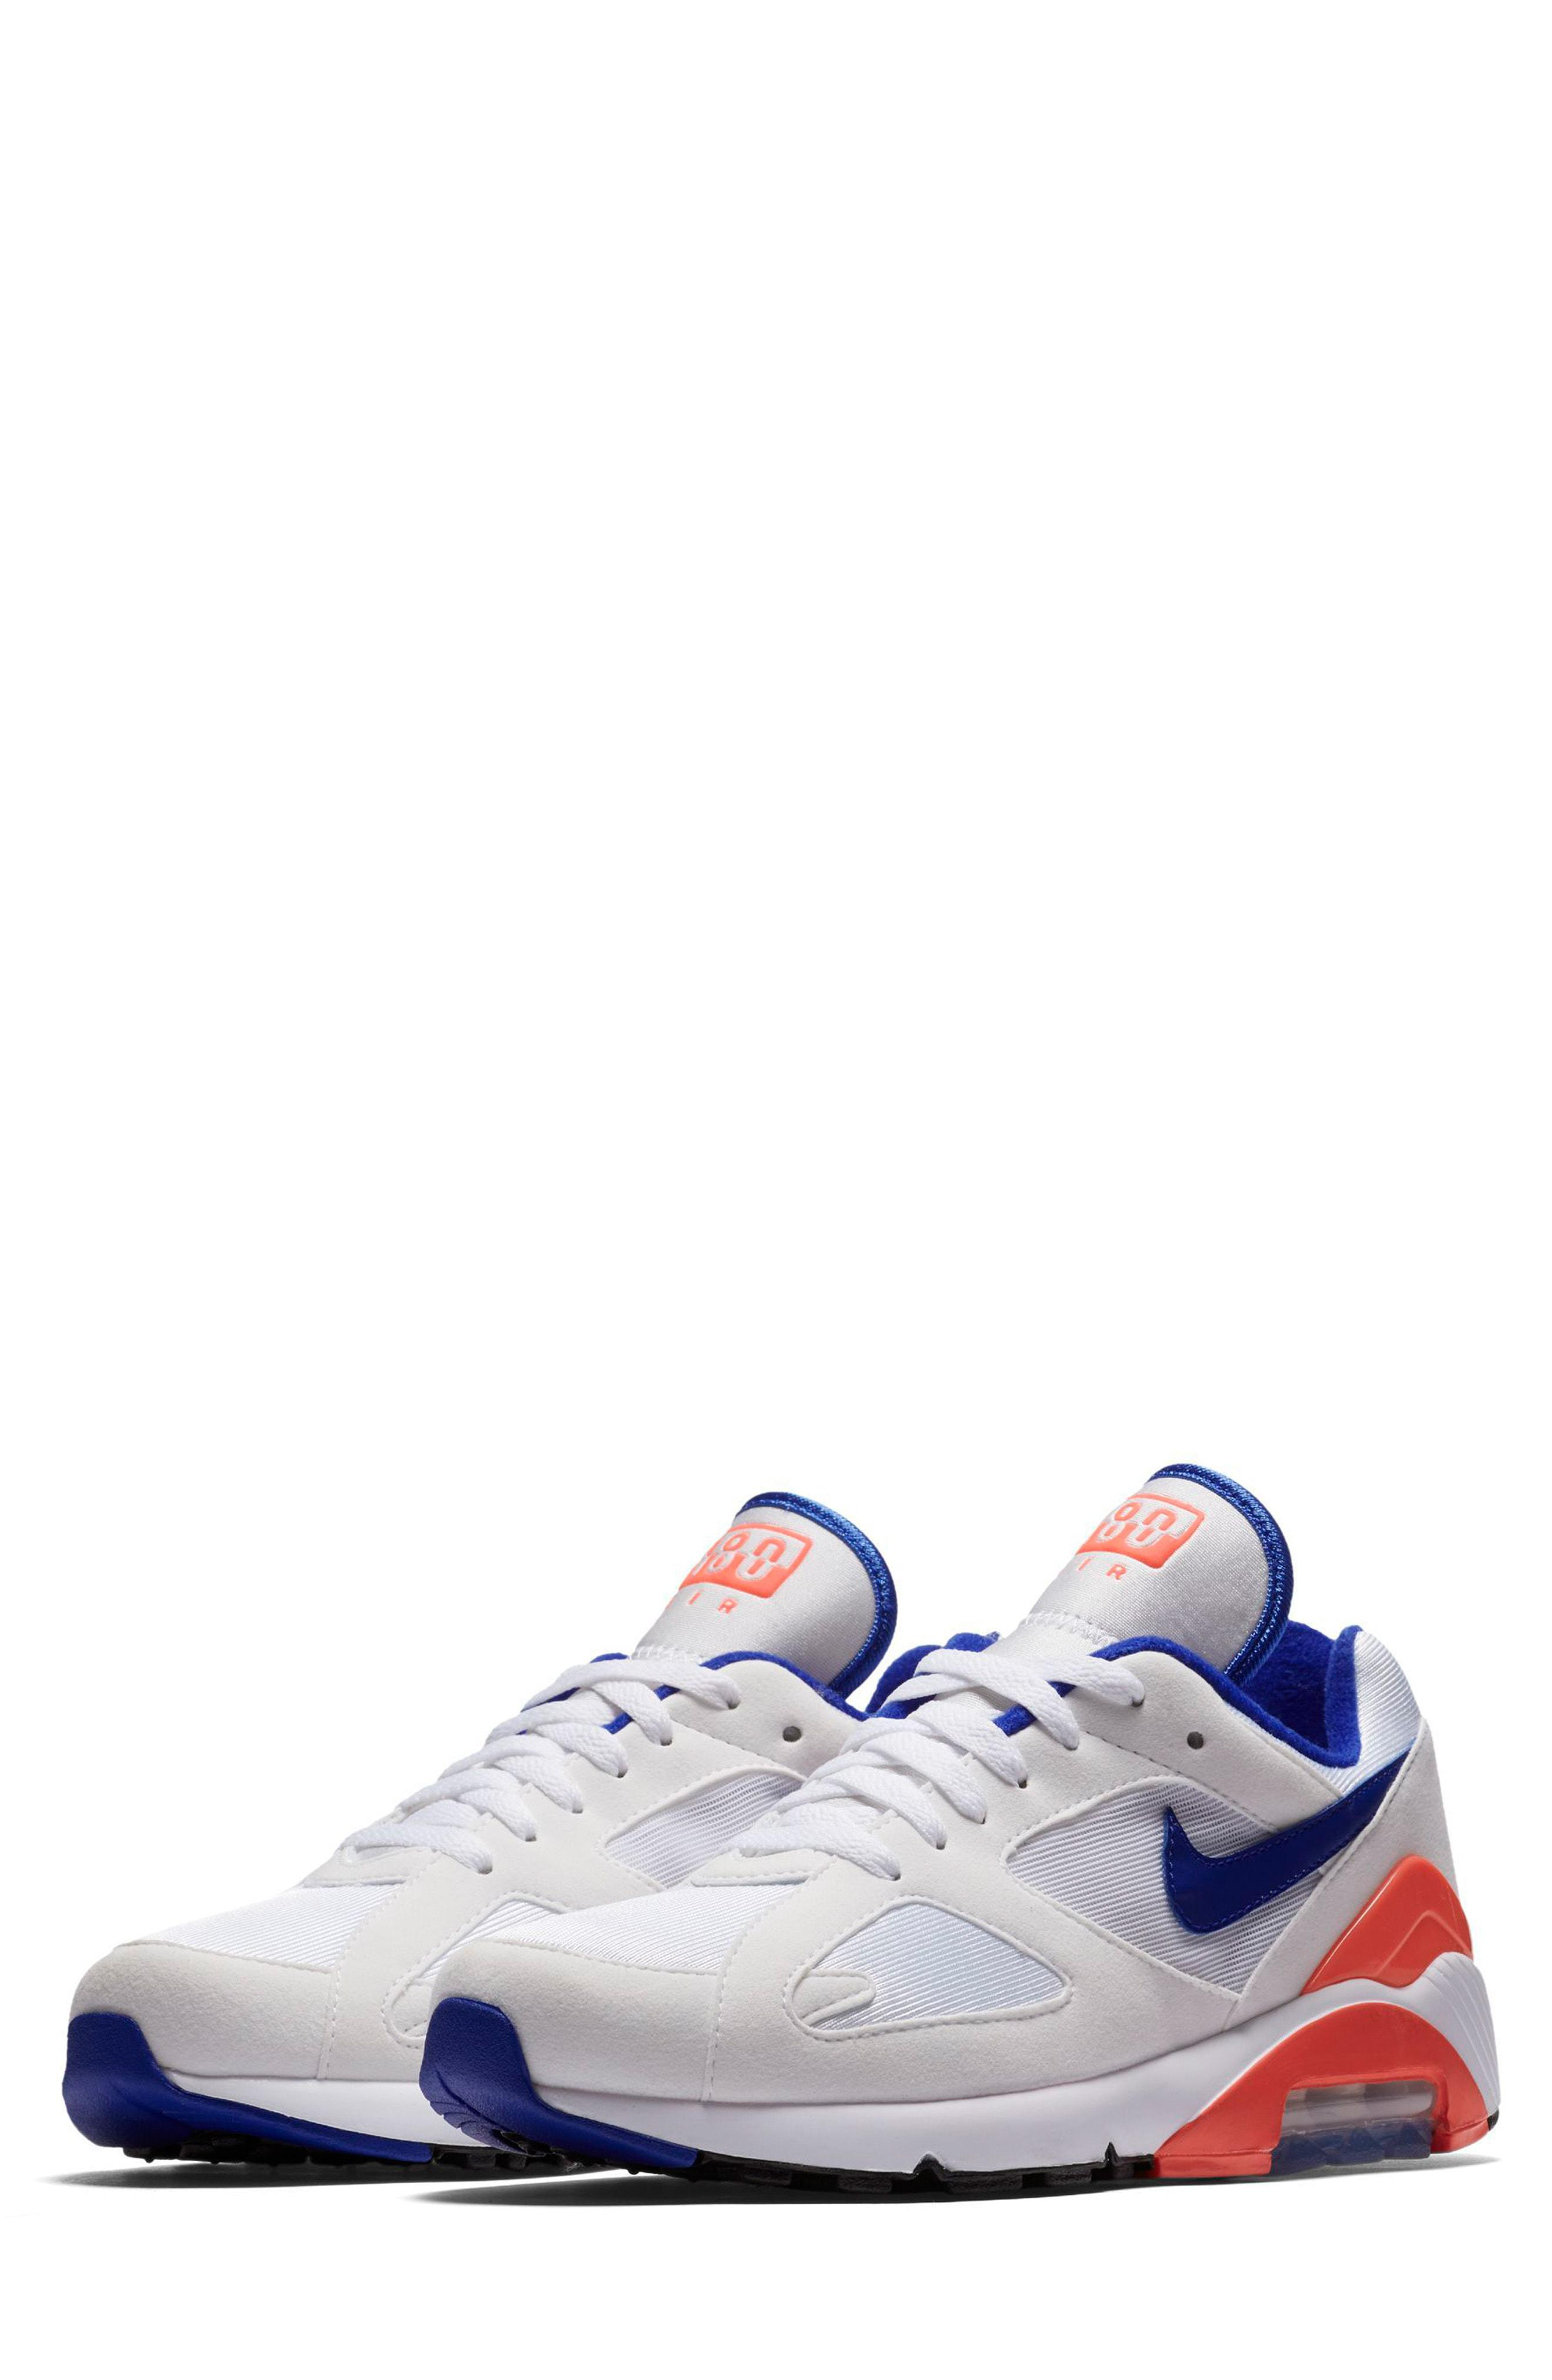 a06afb21d5 Lyst - Nike Air Max 180 Sneaker in White